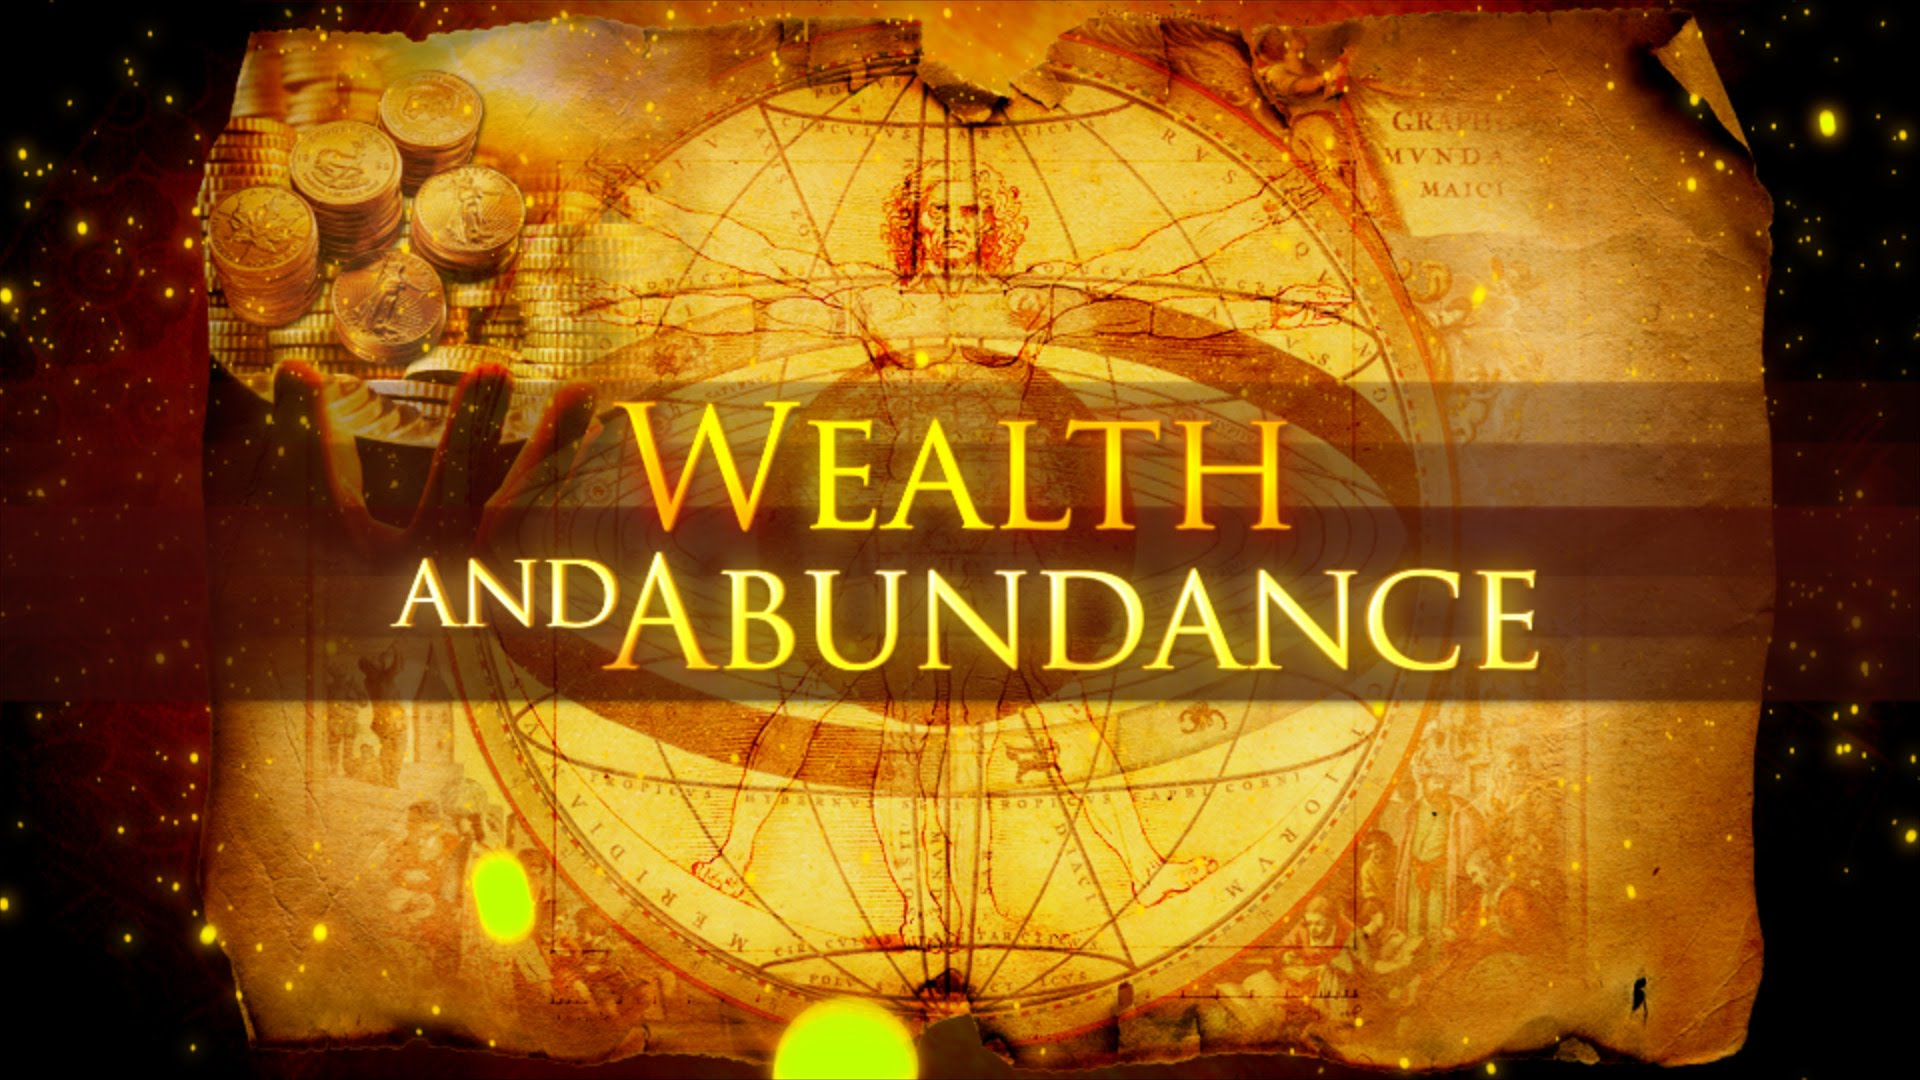 30 Scriptures Reveal God's Plan For Wealth and Riches